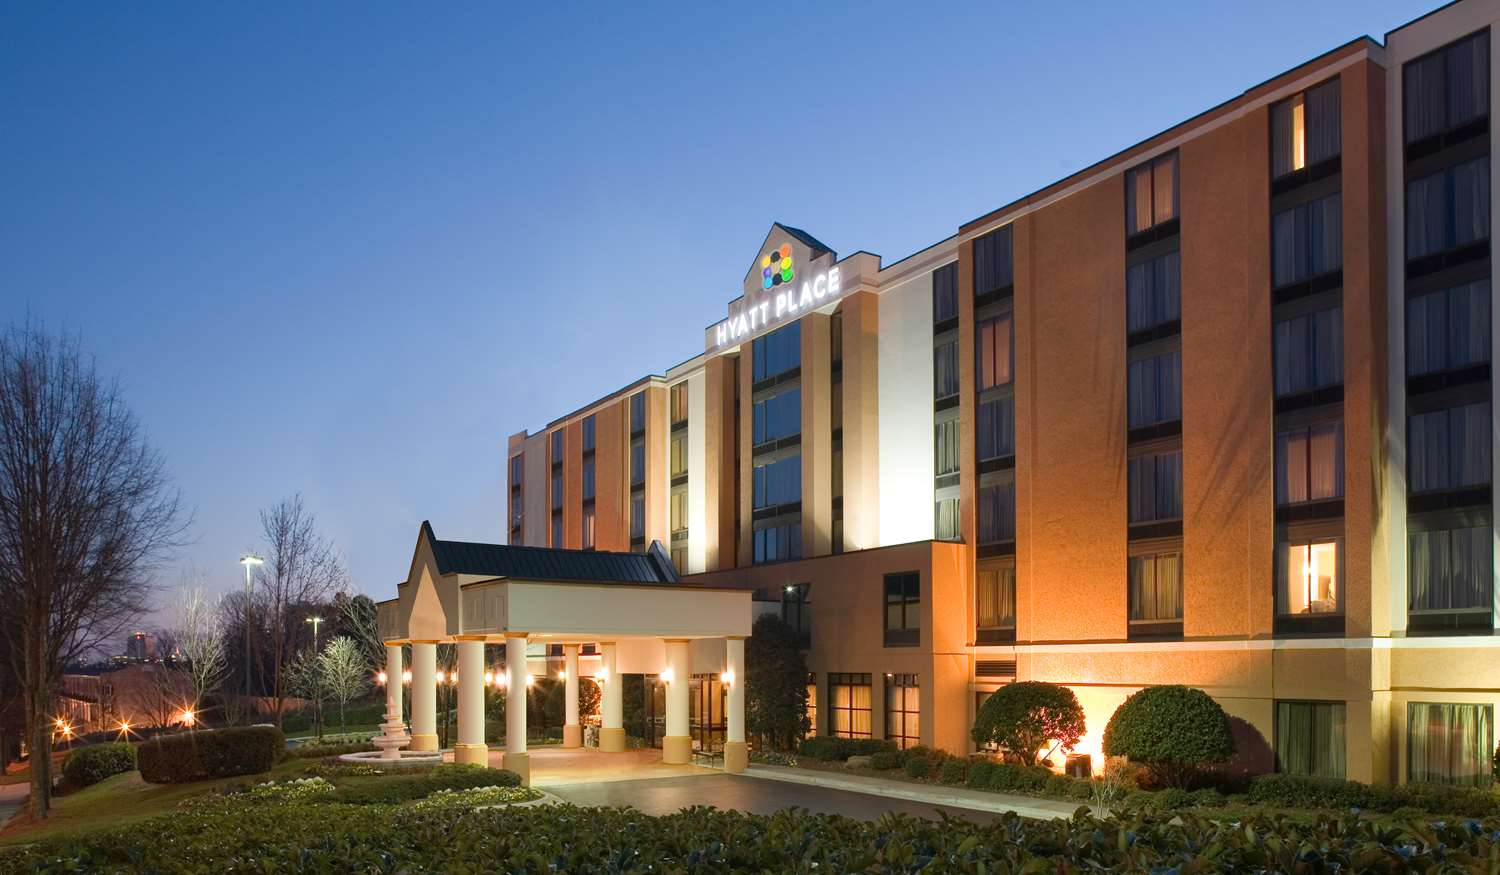 Hyatt Place Hotel Airport Nashvile